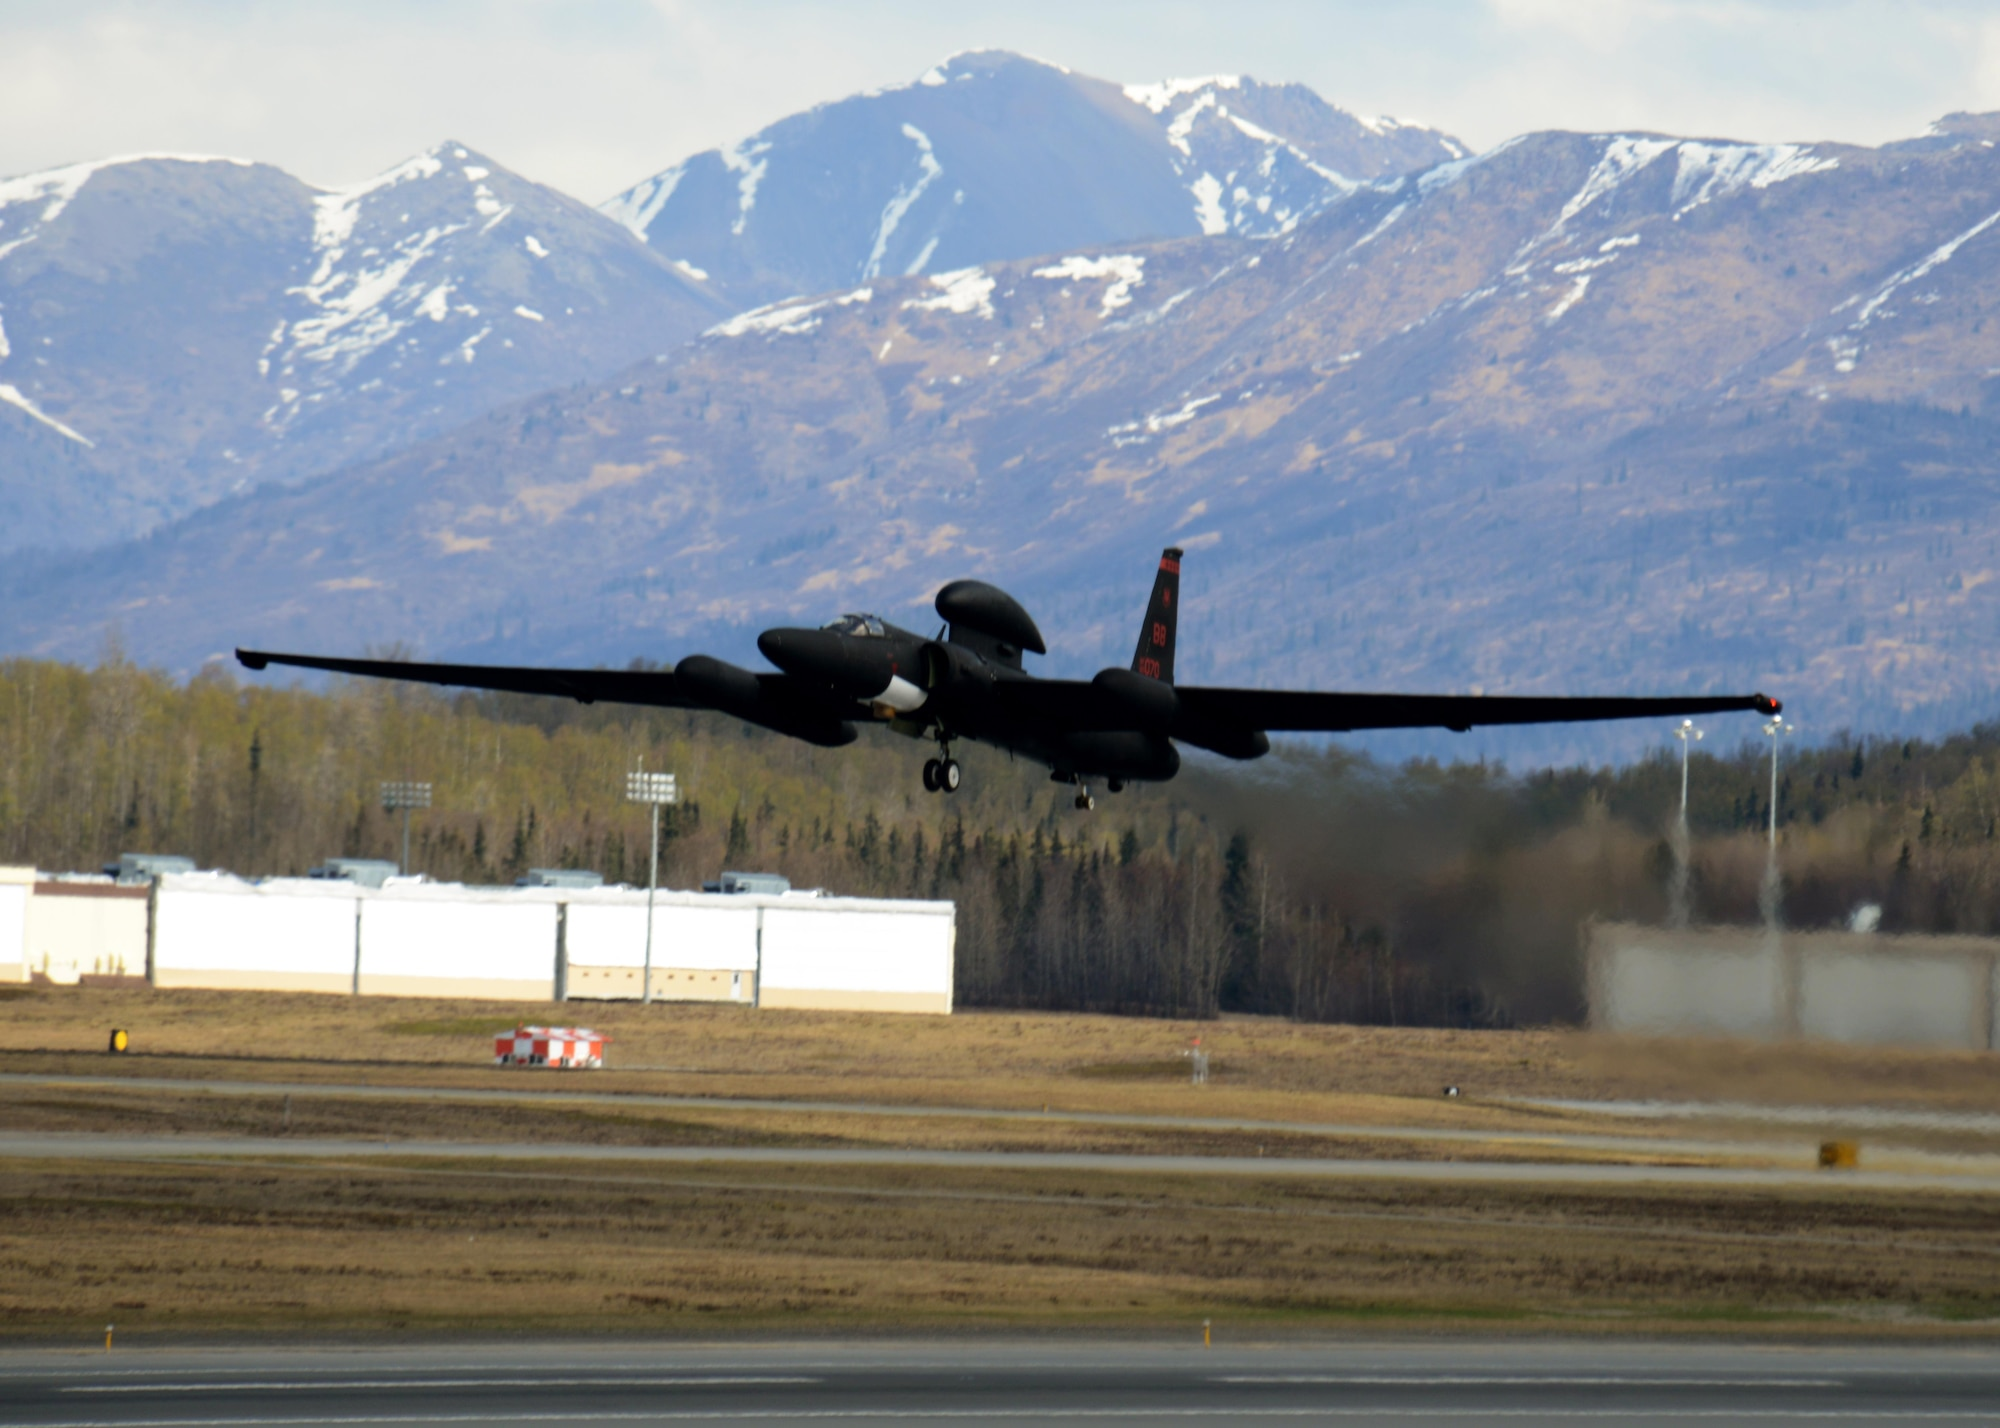 A U-2 Dragon Lady takes off during exercise Northern Edge 17, May 8, 2017. The U-2 is participating for the first time in Northern Edge, the joint training exercise is focused on interoperability and hosting approximately 6,000 service members, 200 fixed wing aircraft and provides the Army, Navy, Air Force, Marines and Coast Guard with critical training.